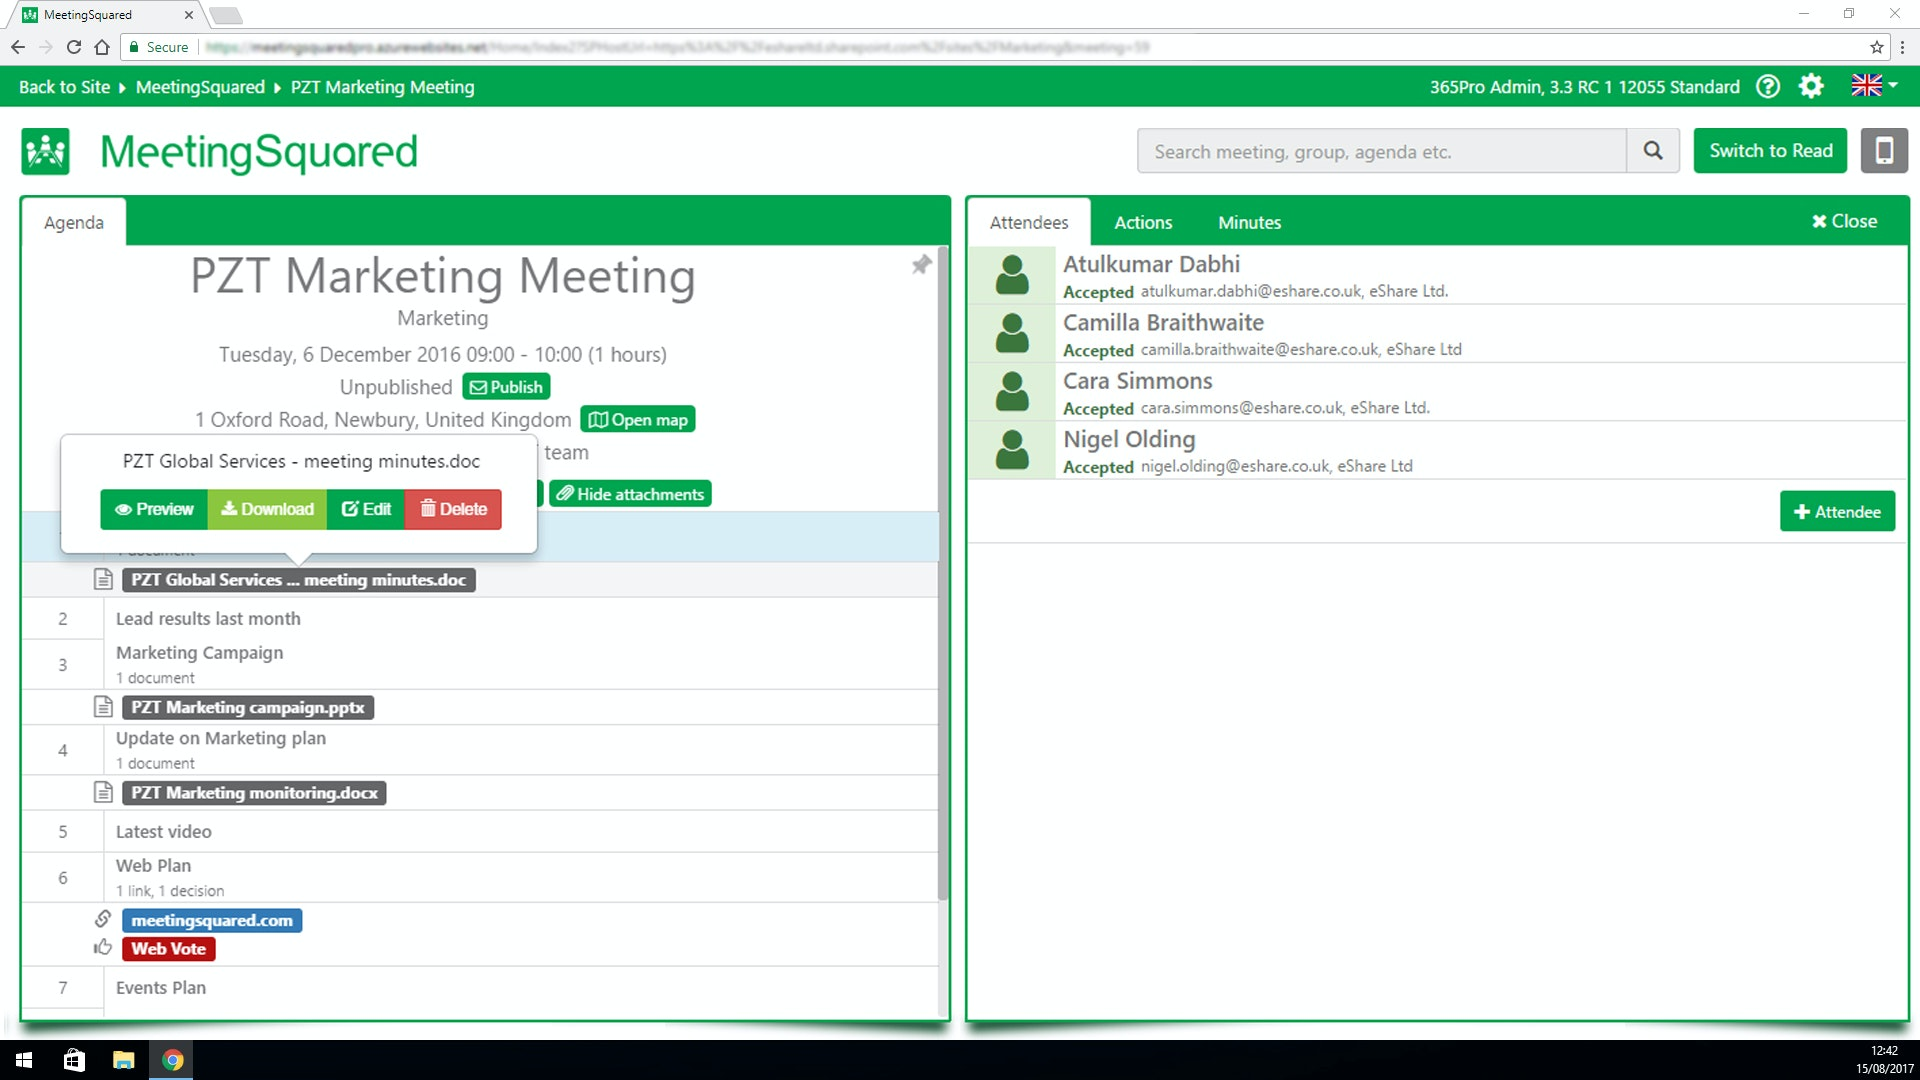 Download meeting minutes